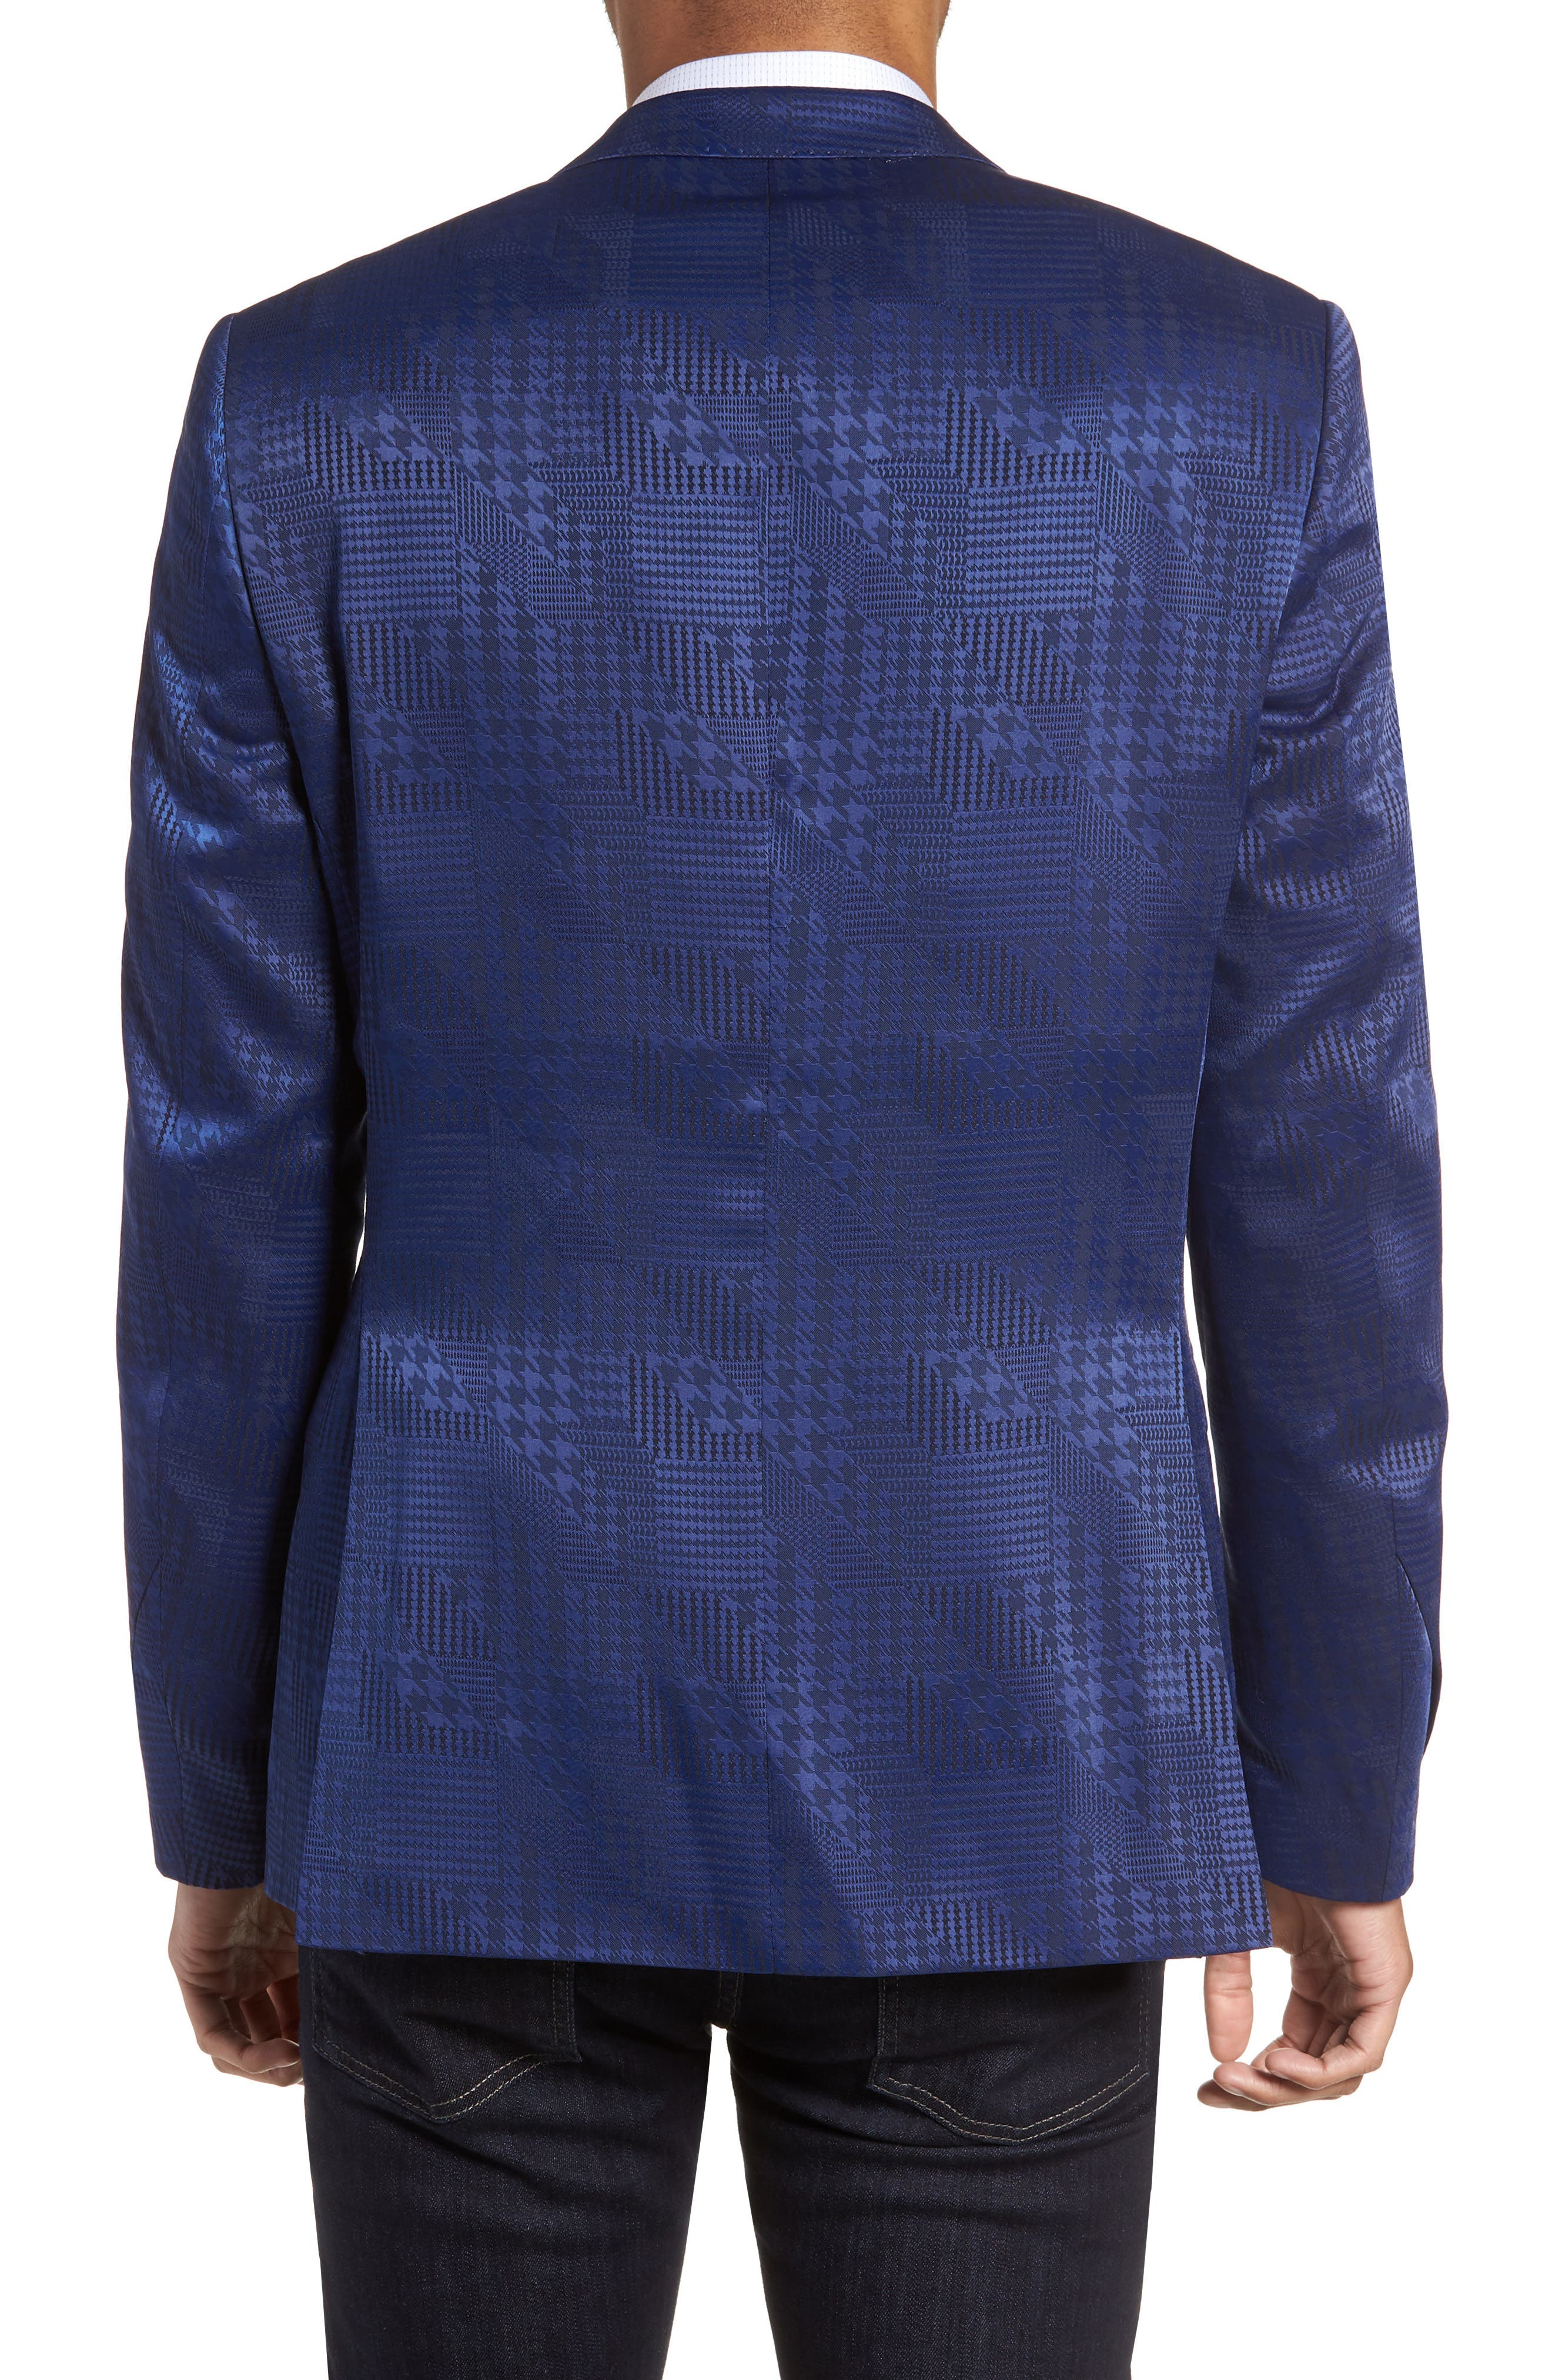 Descartes Patch Houndstooth Sport Coat,                             Alternate thumbnail 2, color,                             420